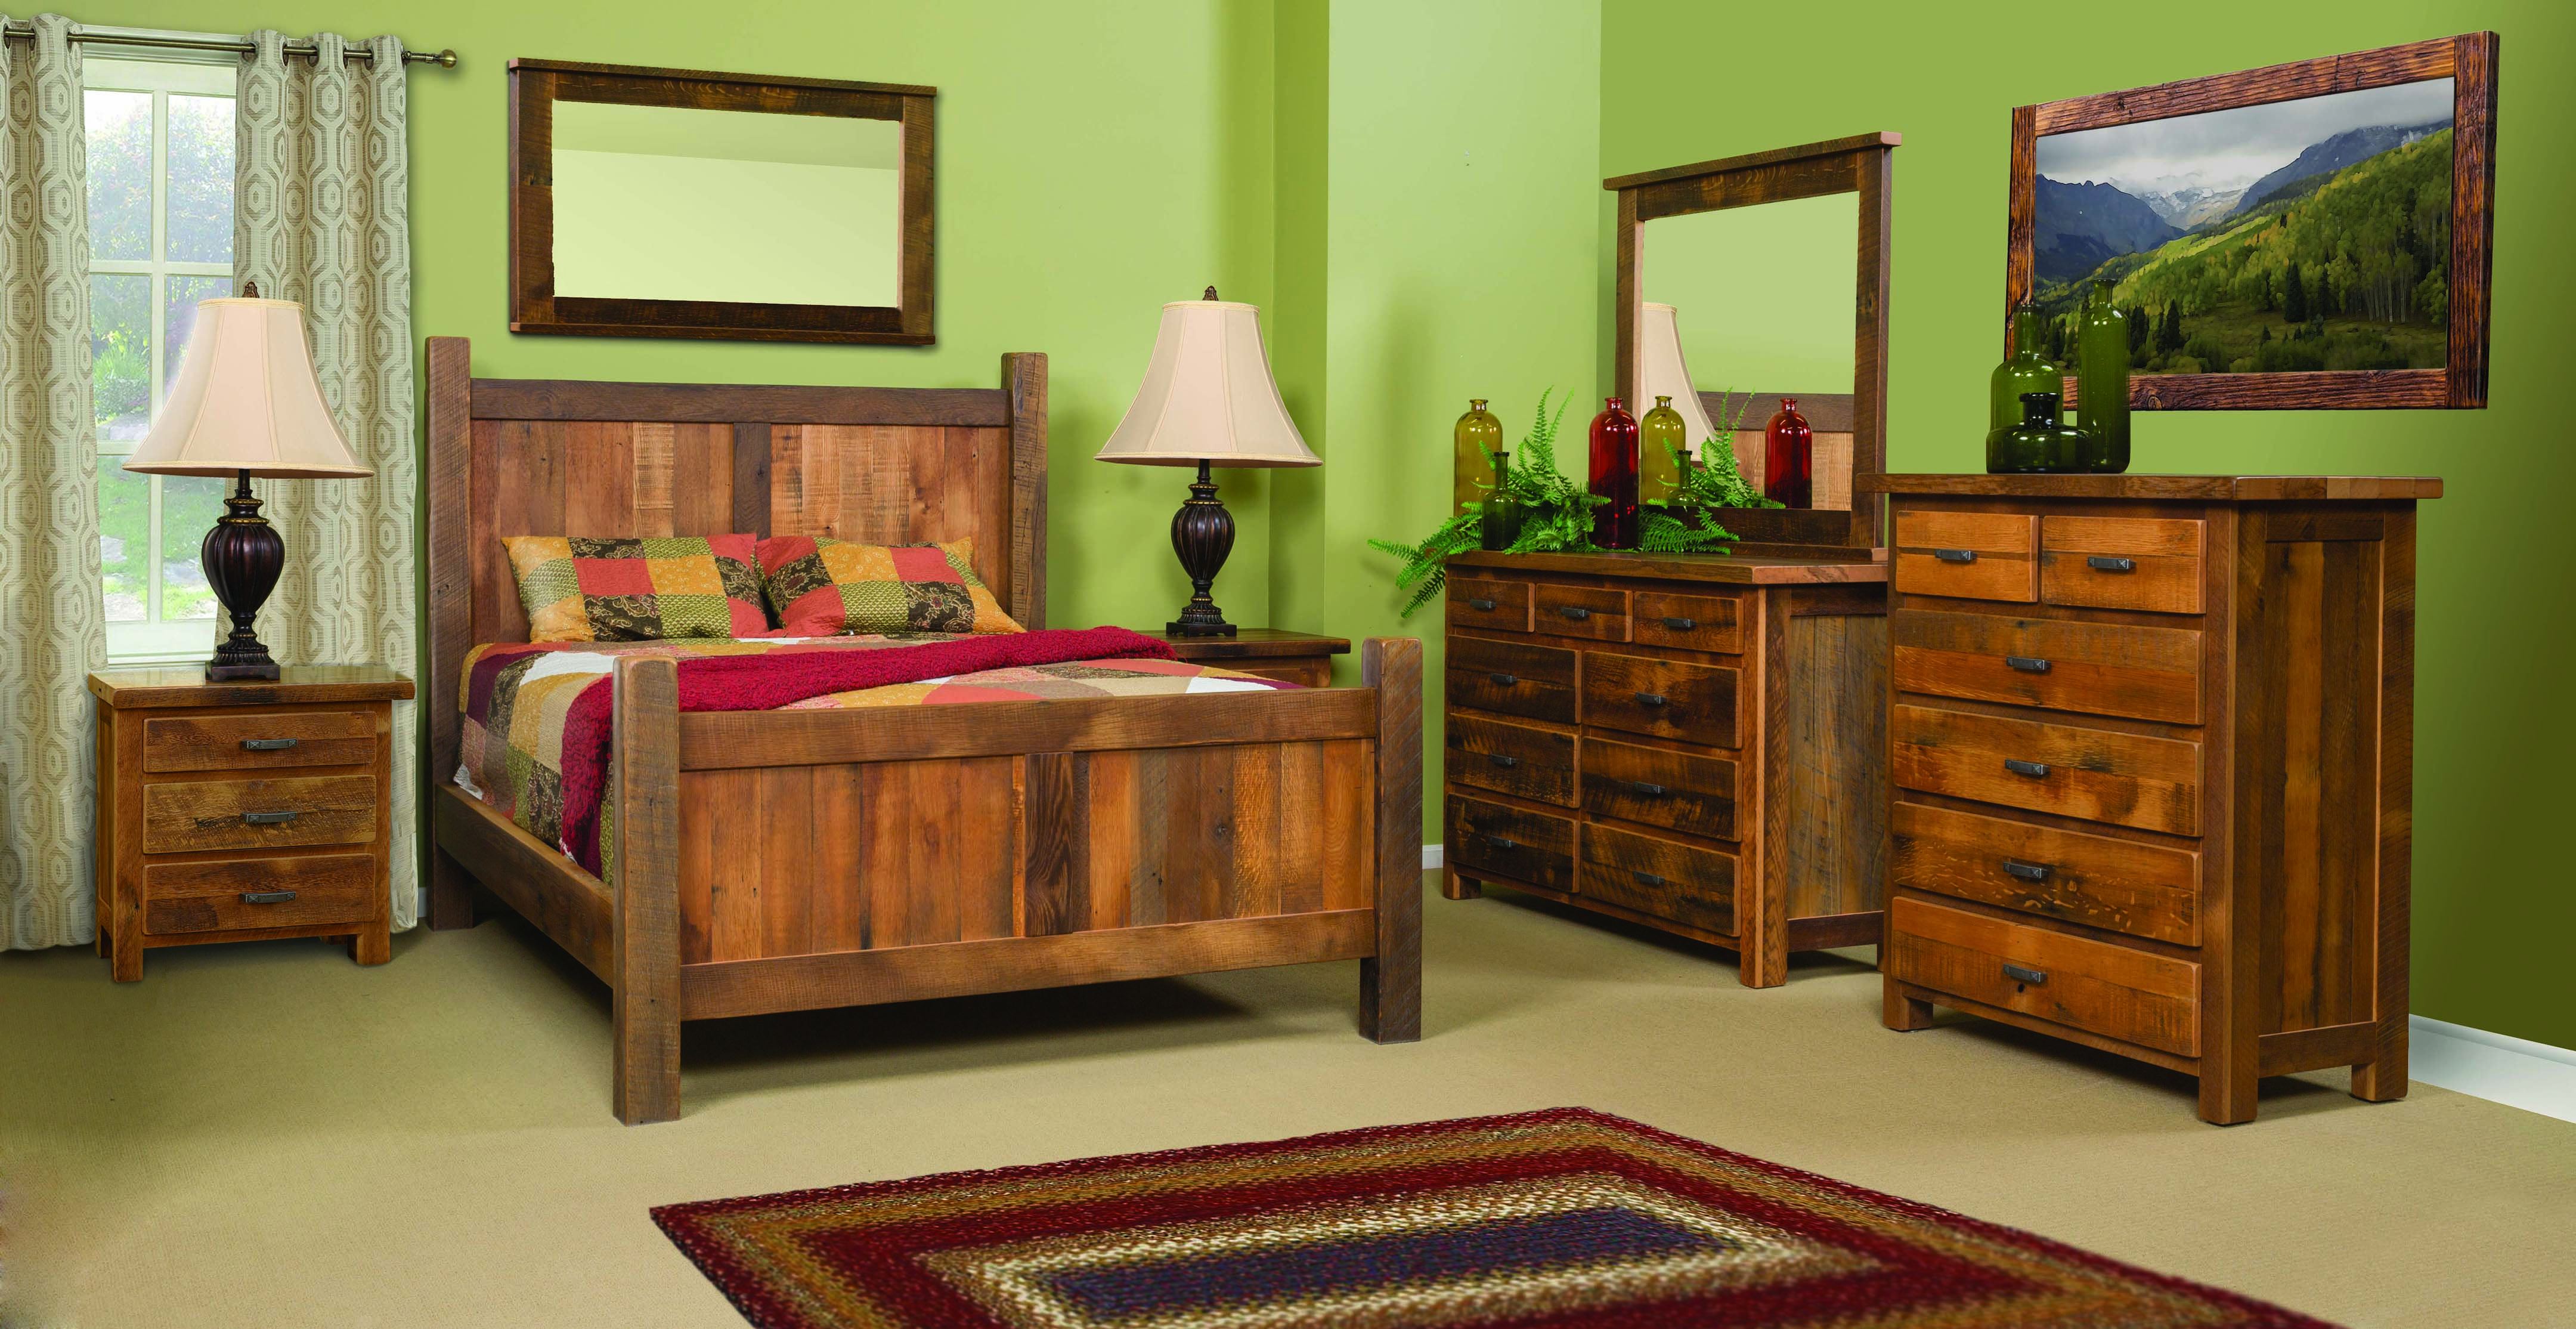 One of our Barnwood Bedroom Suites. Made of reclaimed